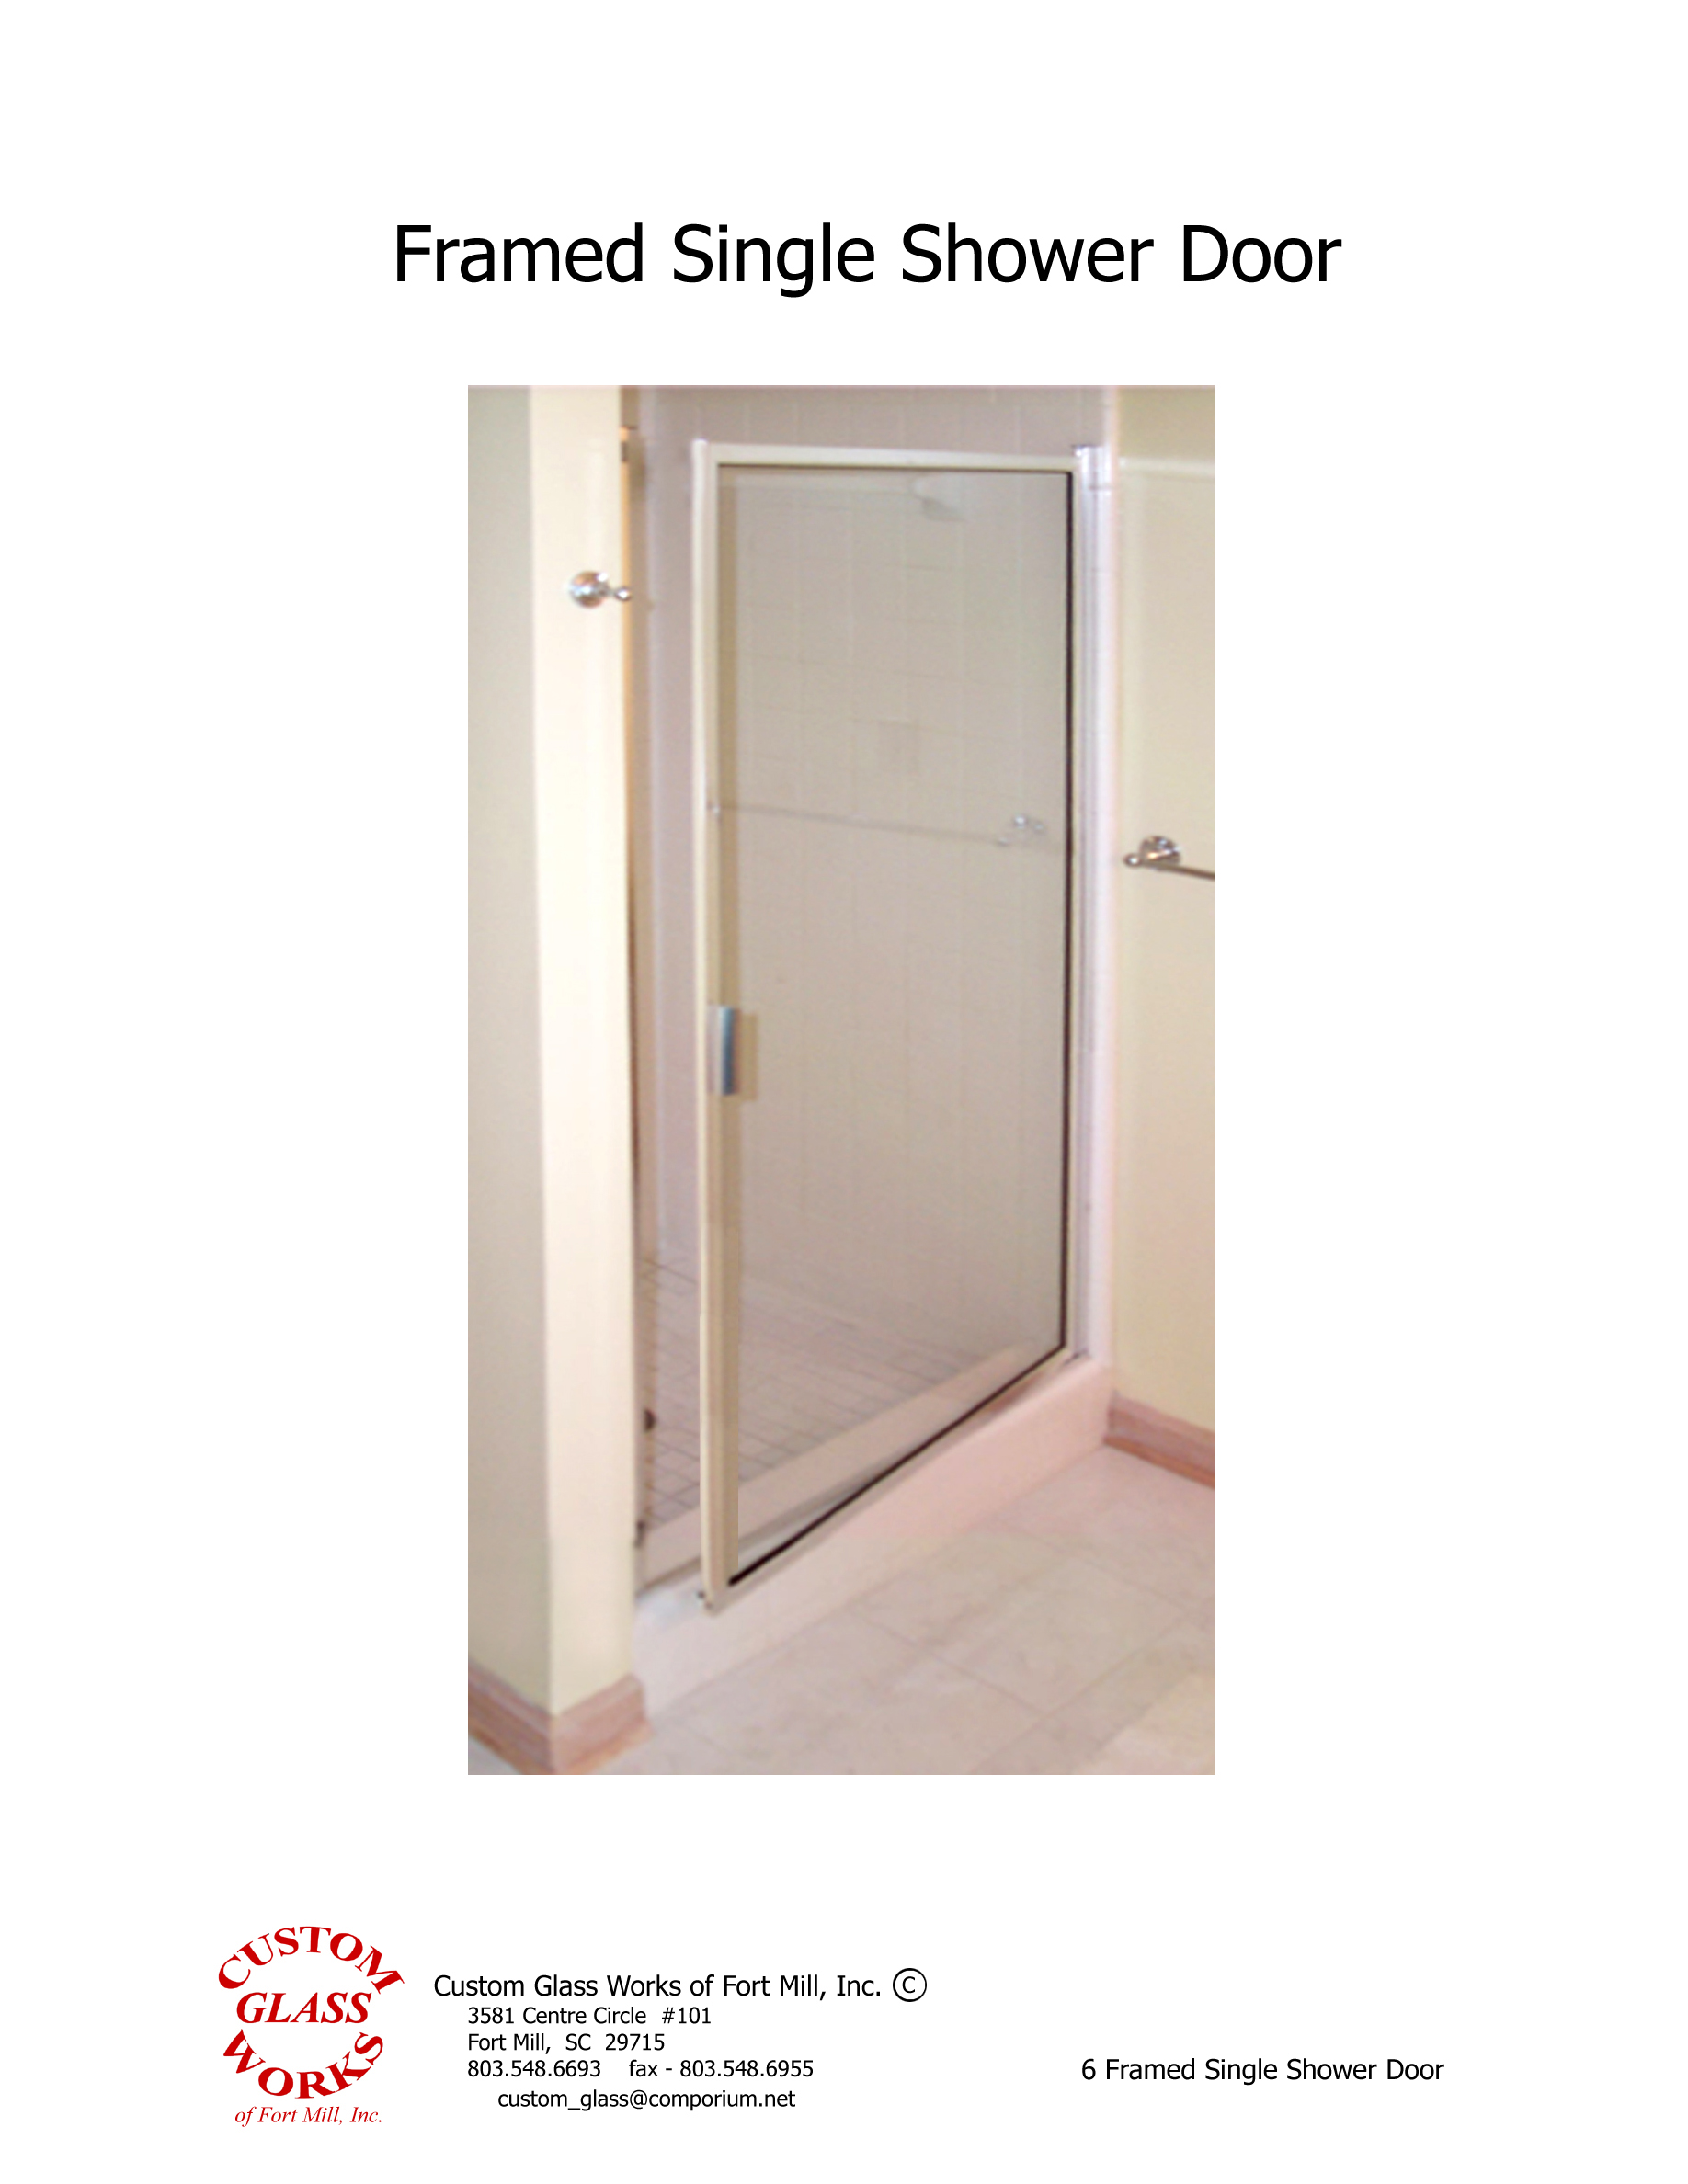 6 Framed Single Shower Door